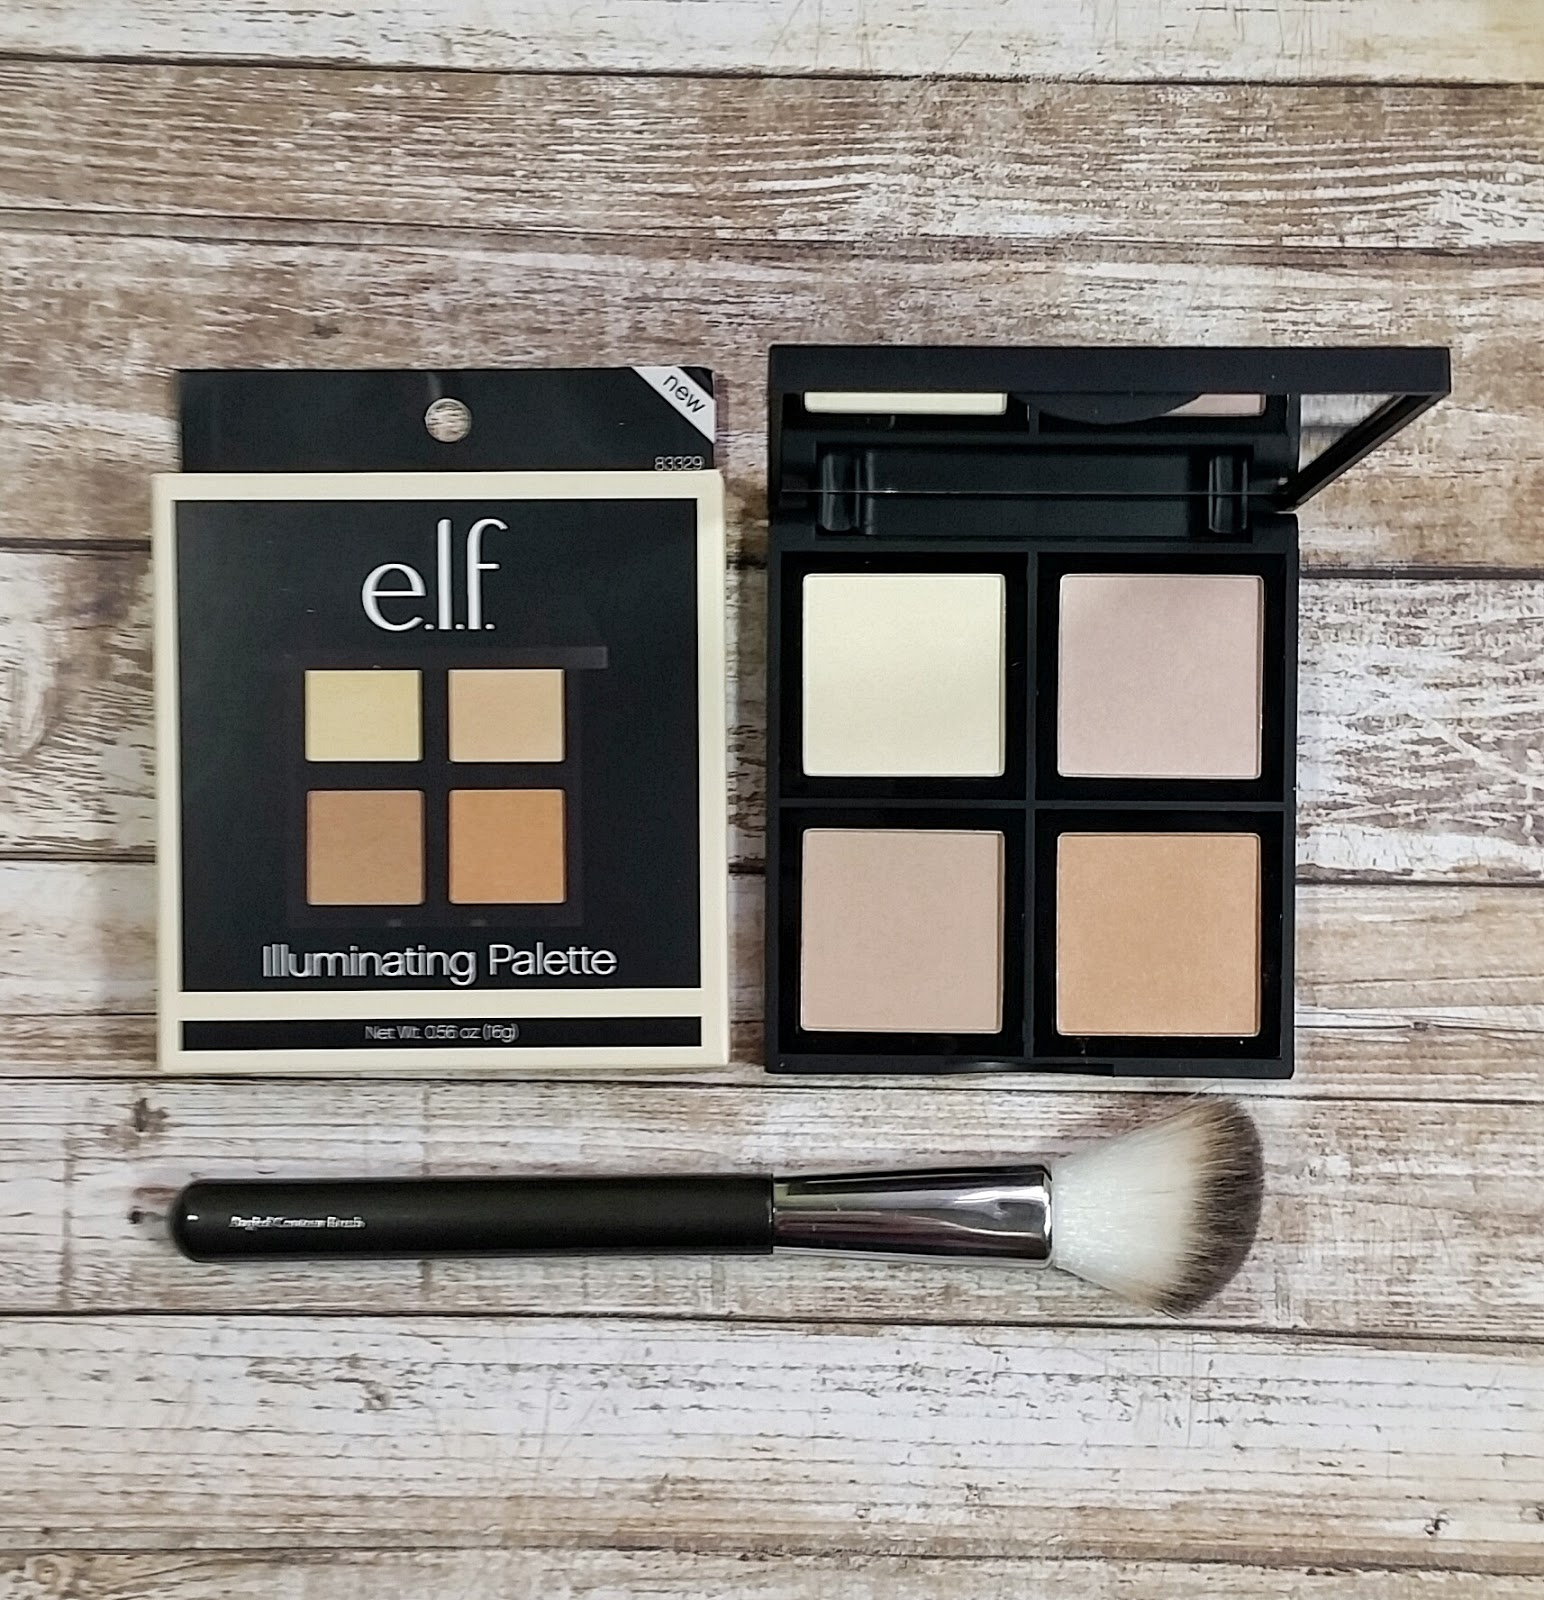 Elf Illuminating Palette Review Swatches